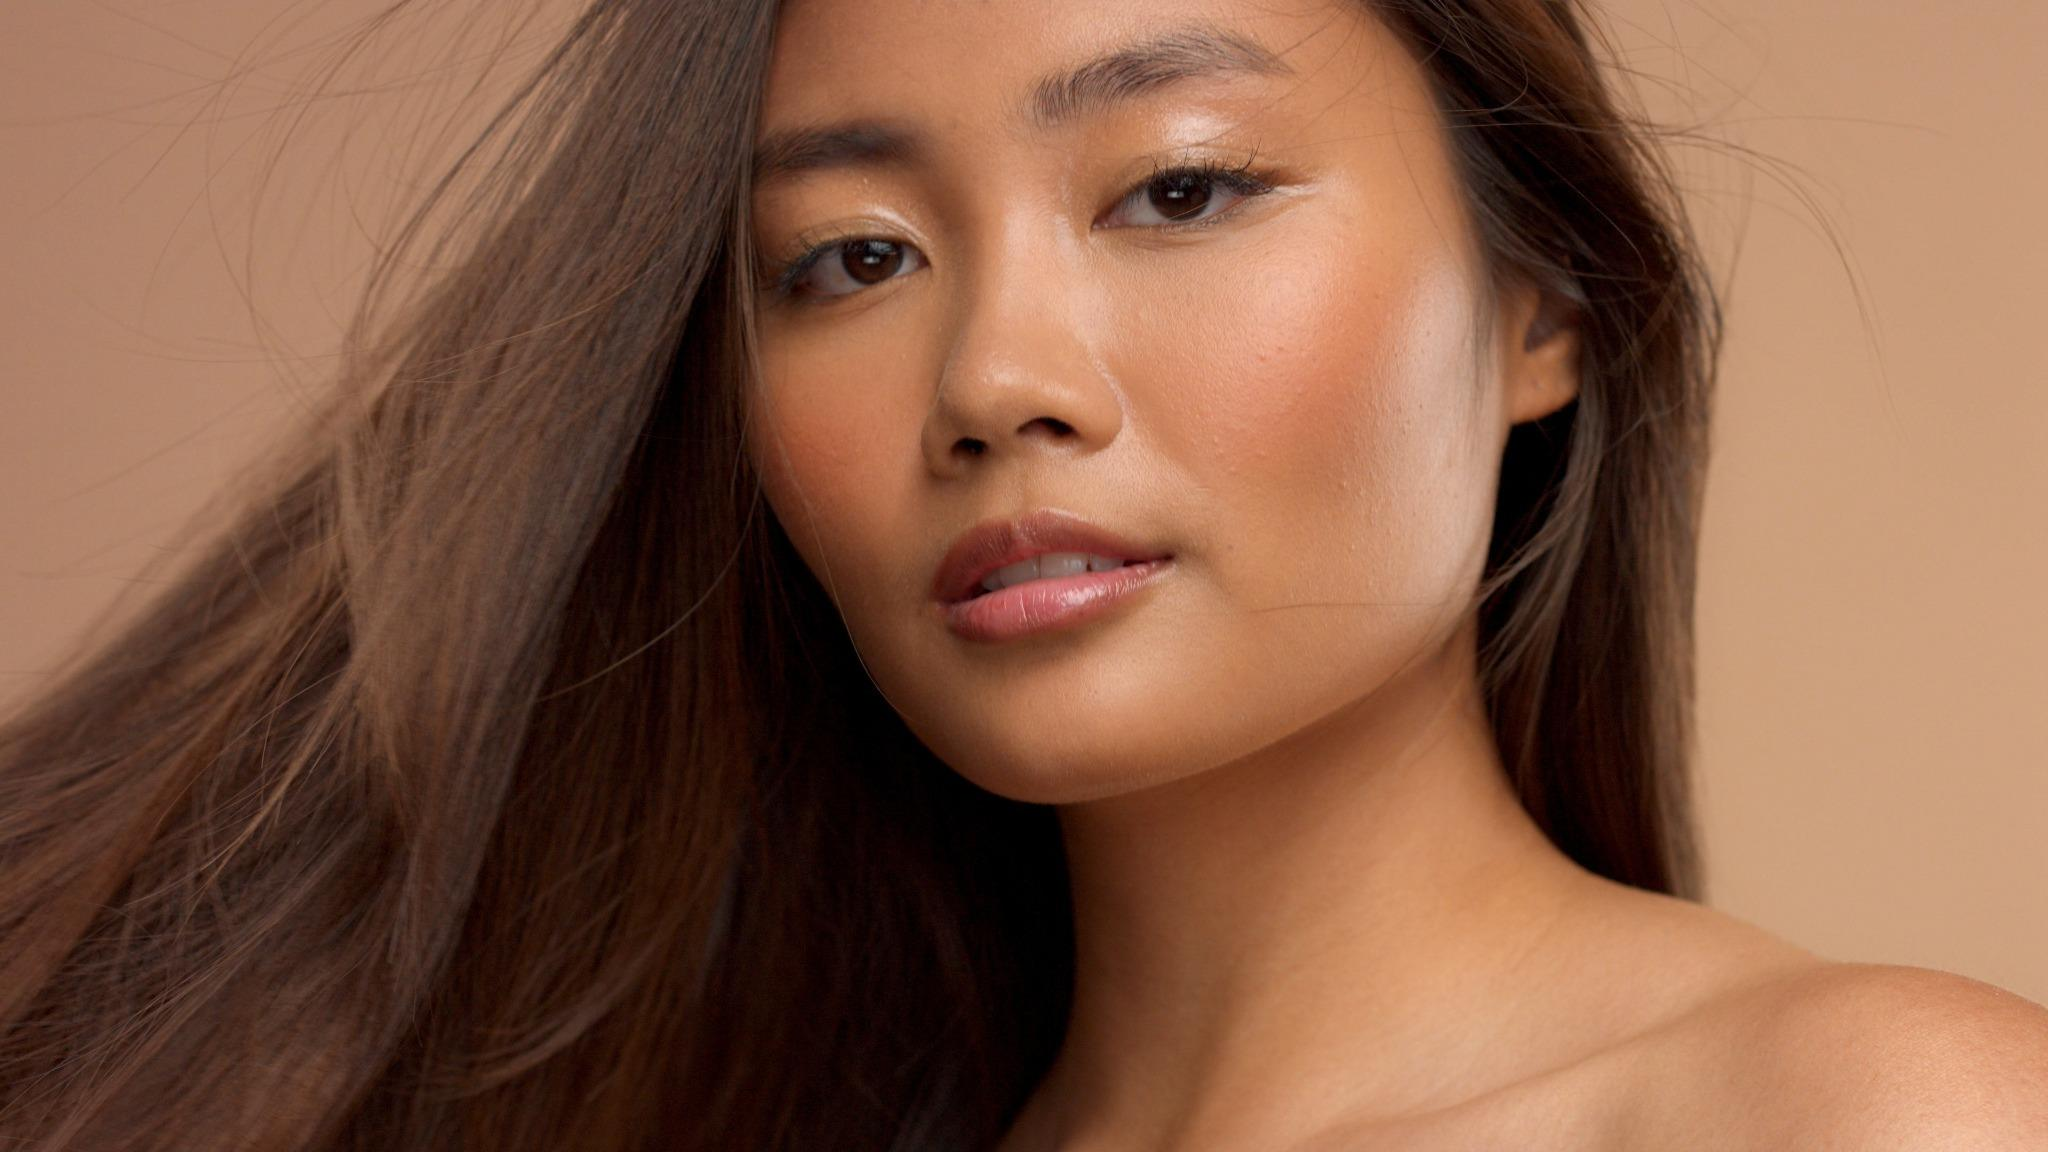 A portrait of a beautiful Asian woman on a tan background with stunning hair